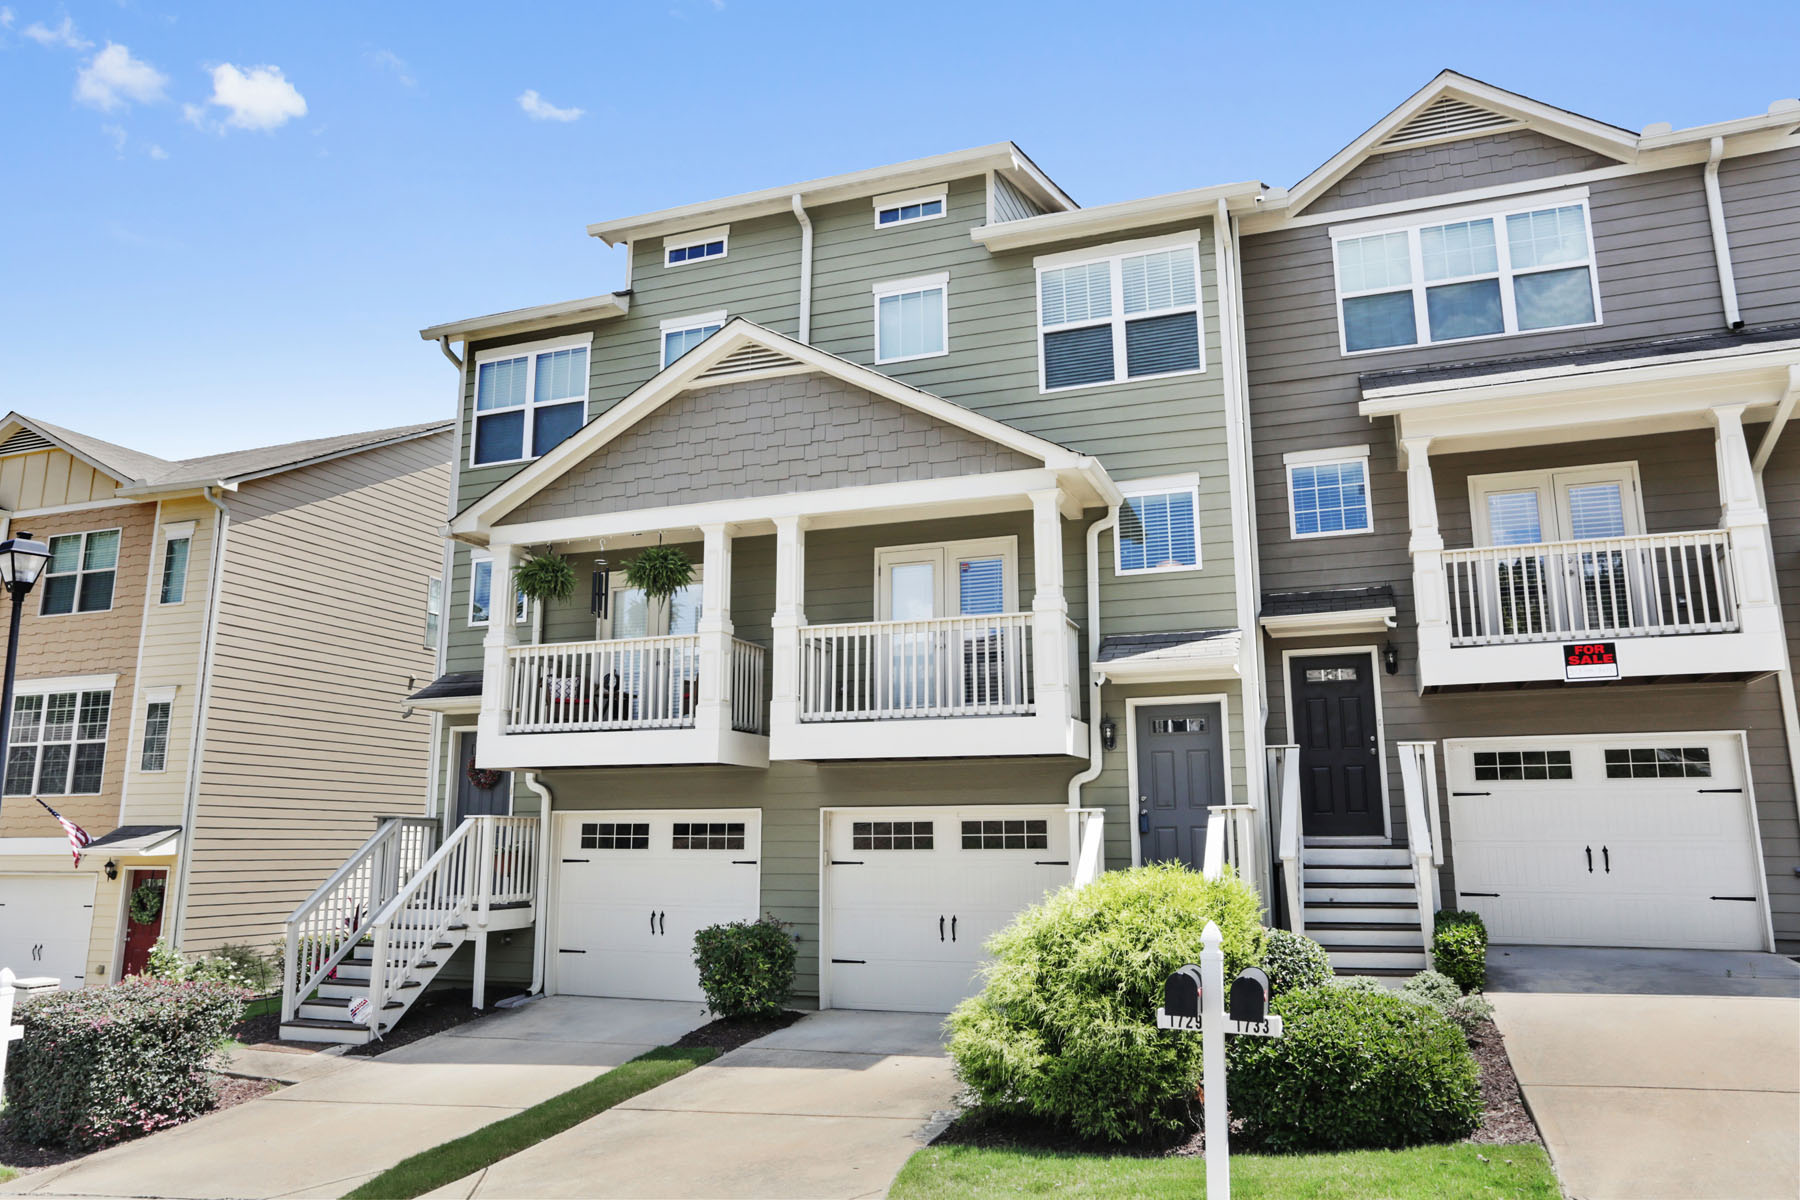 Townhouse for Rent at Liberty Park Townhome 1729 Liberty Parkway Atlanta, Georgia 30318 United States